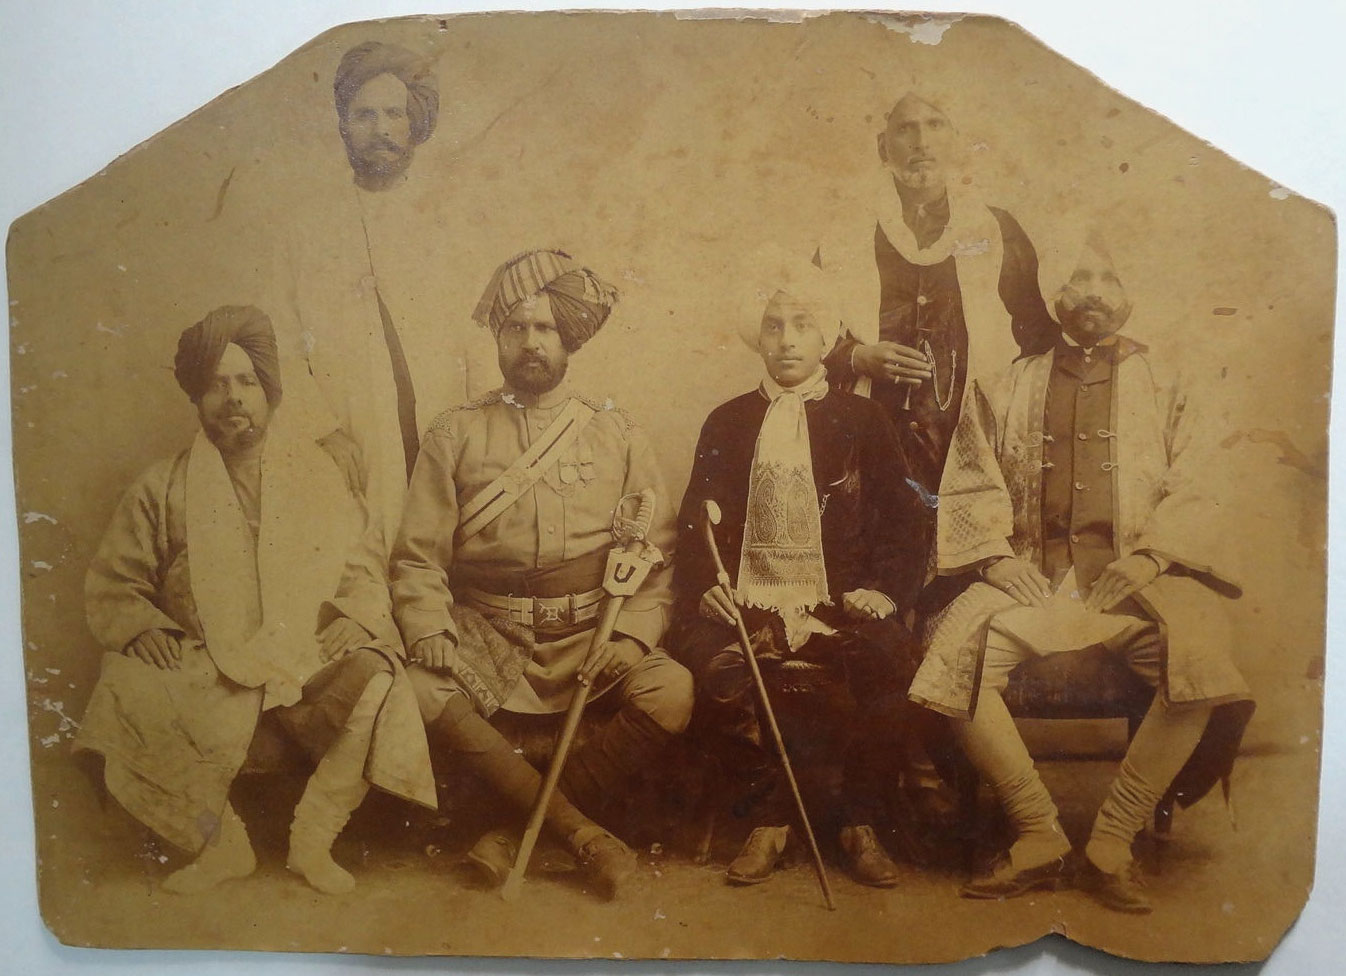 Sikh Prince with Group - 19th Century